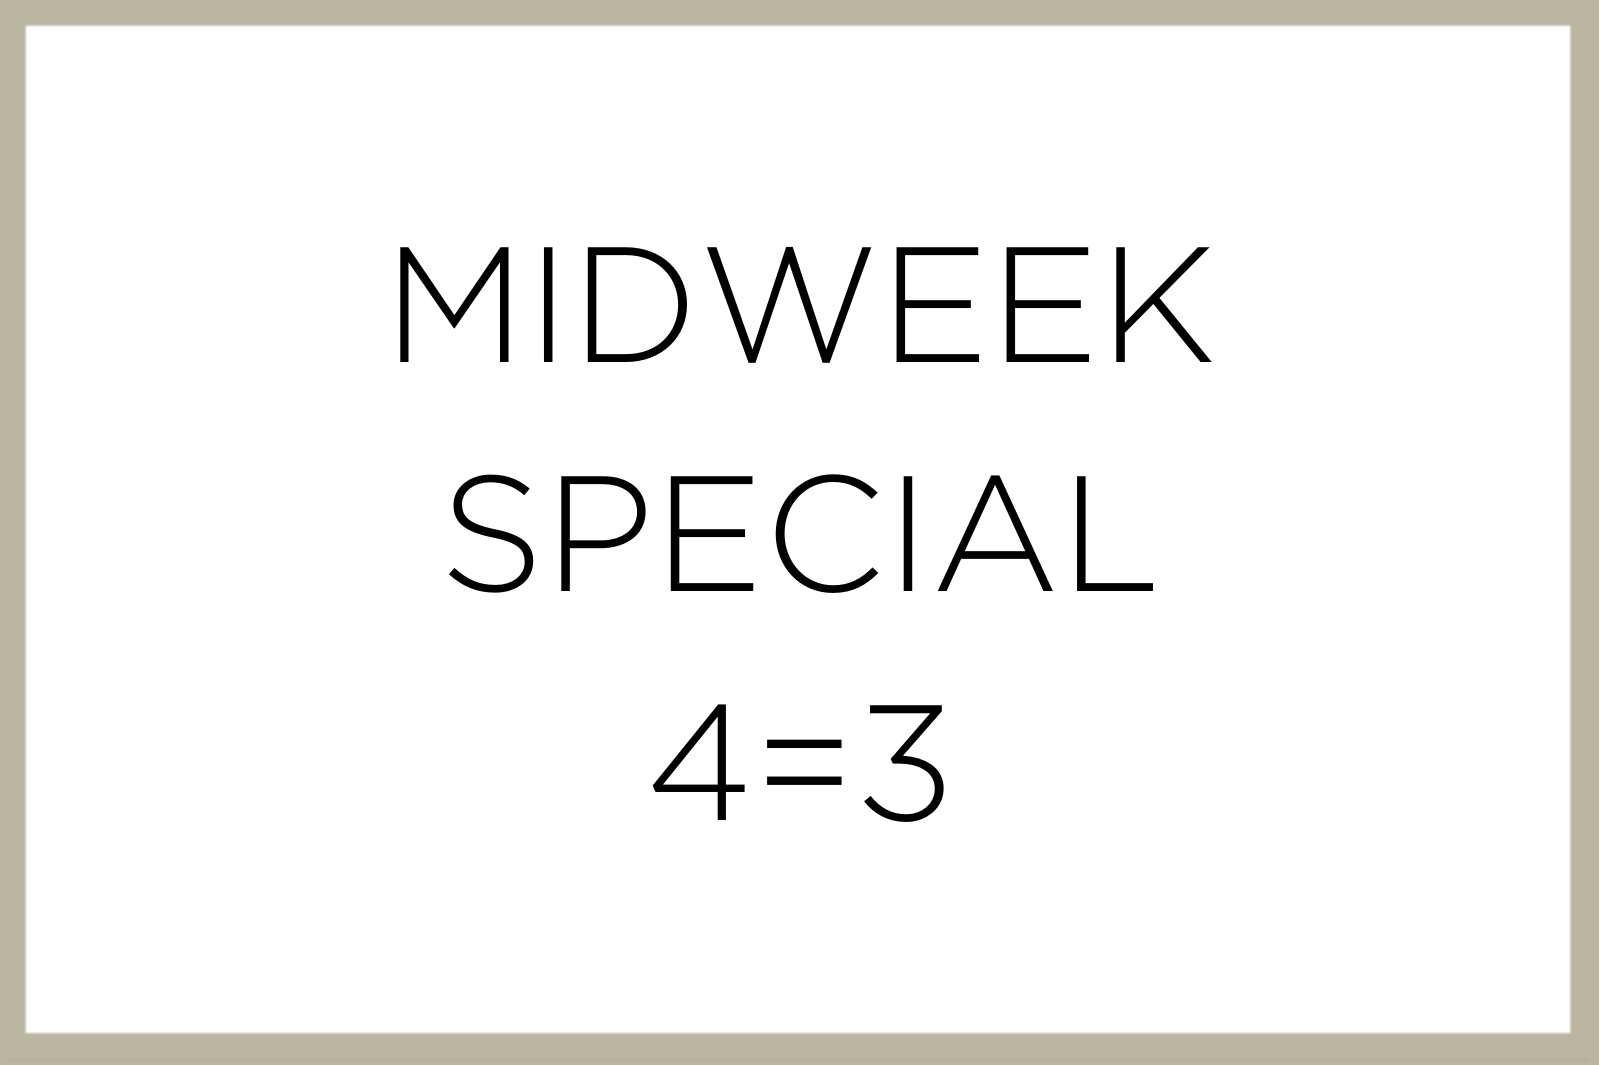 Text Midweek Special